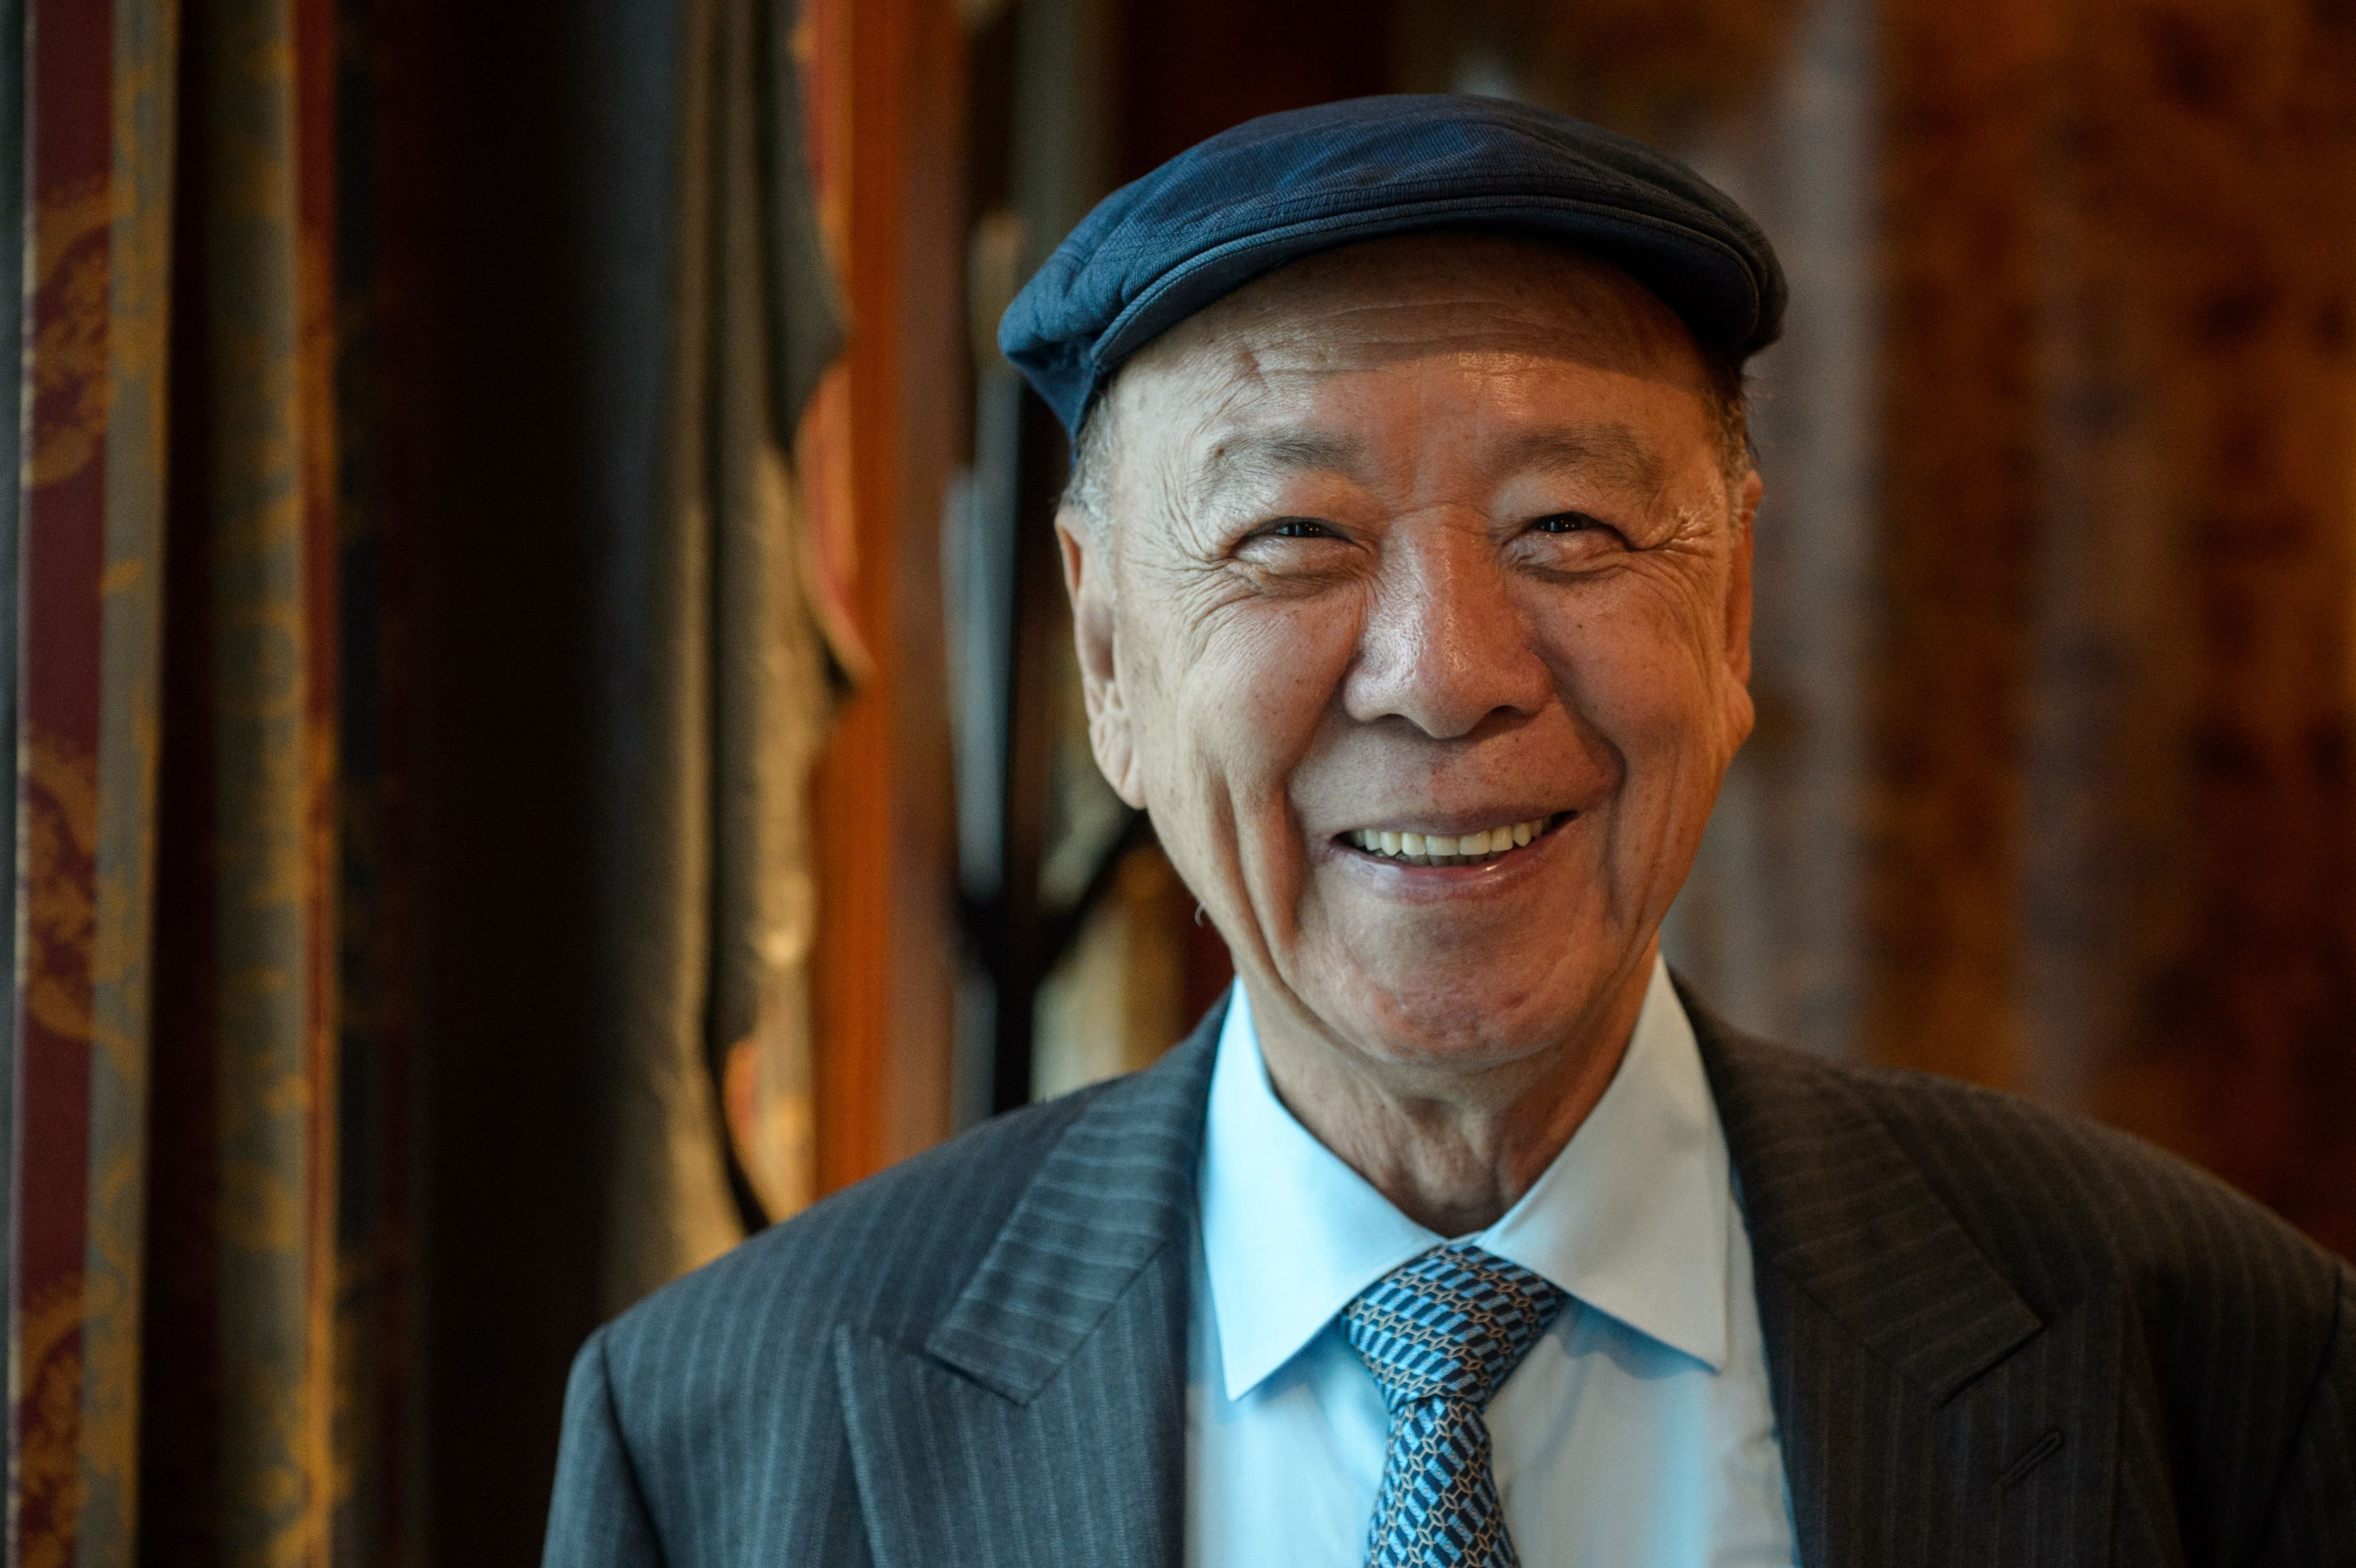 In this picture taken on Sept. 26, 2016, chairman and founder of Galaxy Entertainment Group Lui Che-woo, 87, poses during an interview with AFP in Hong Kong.